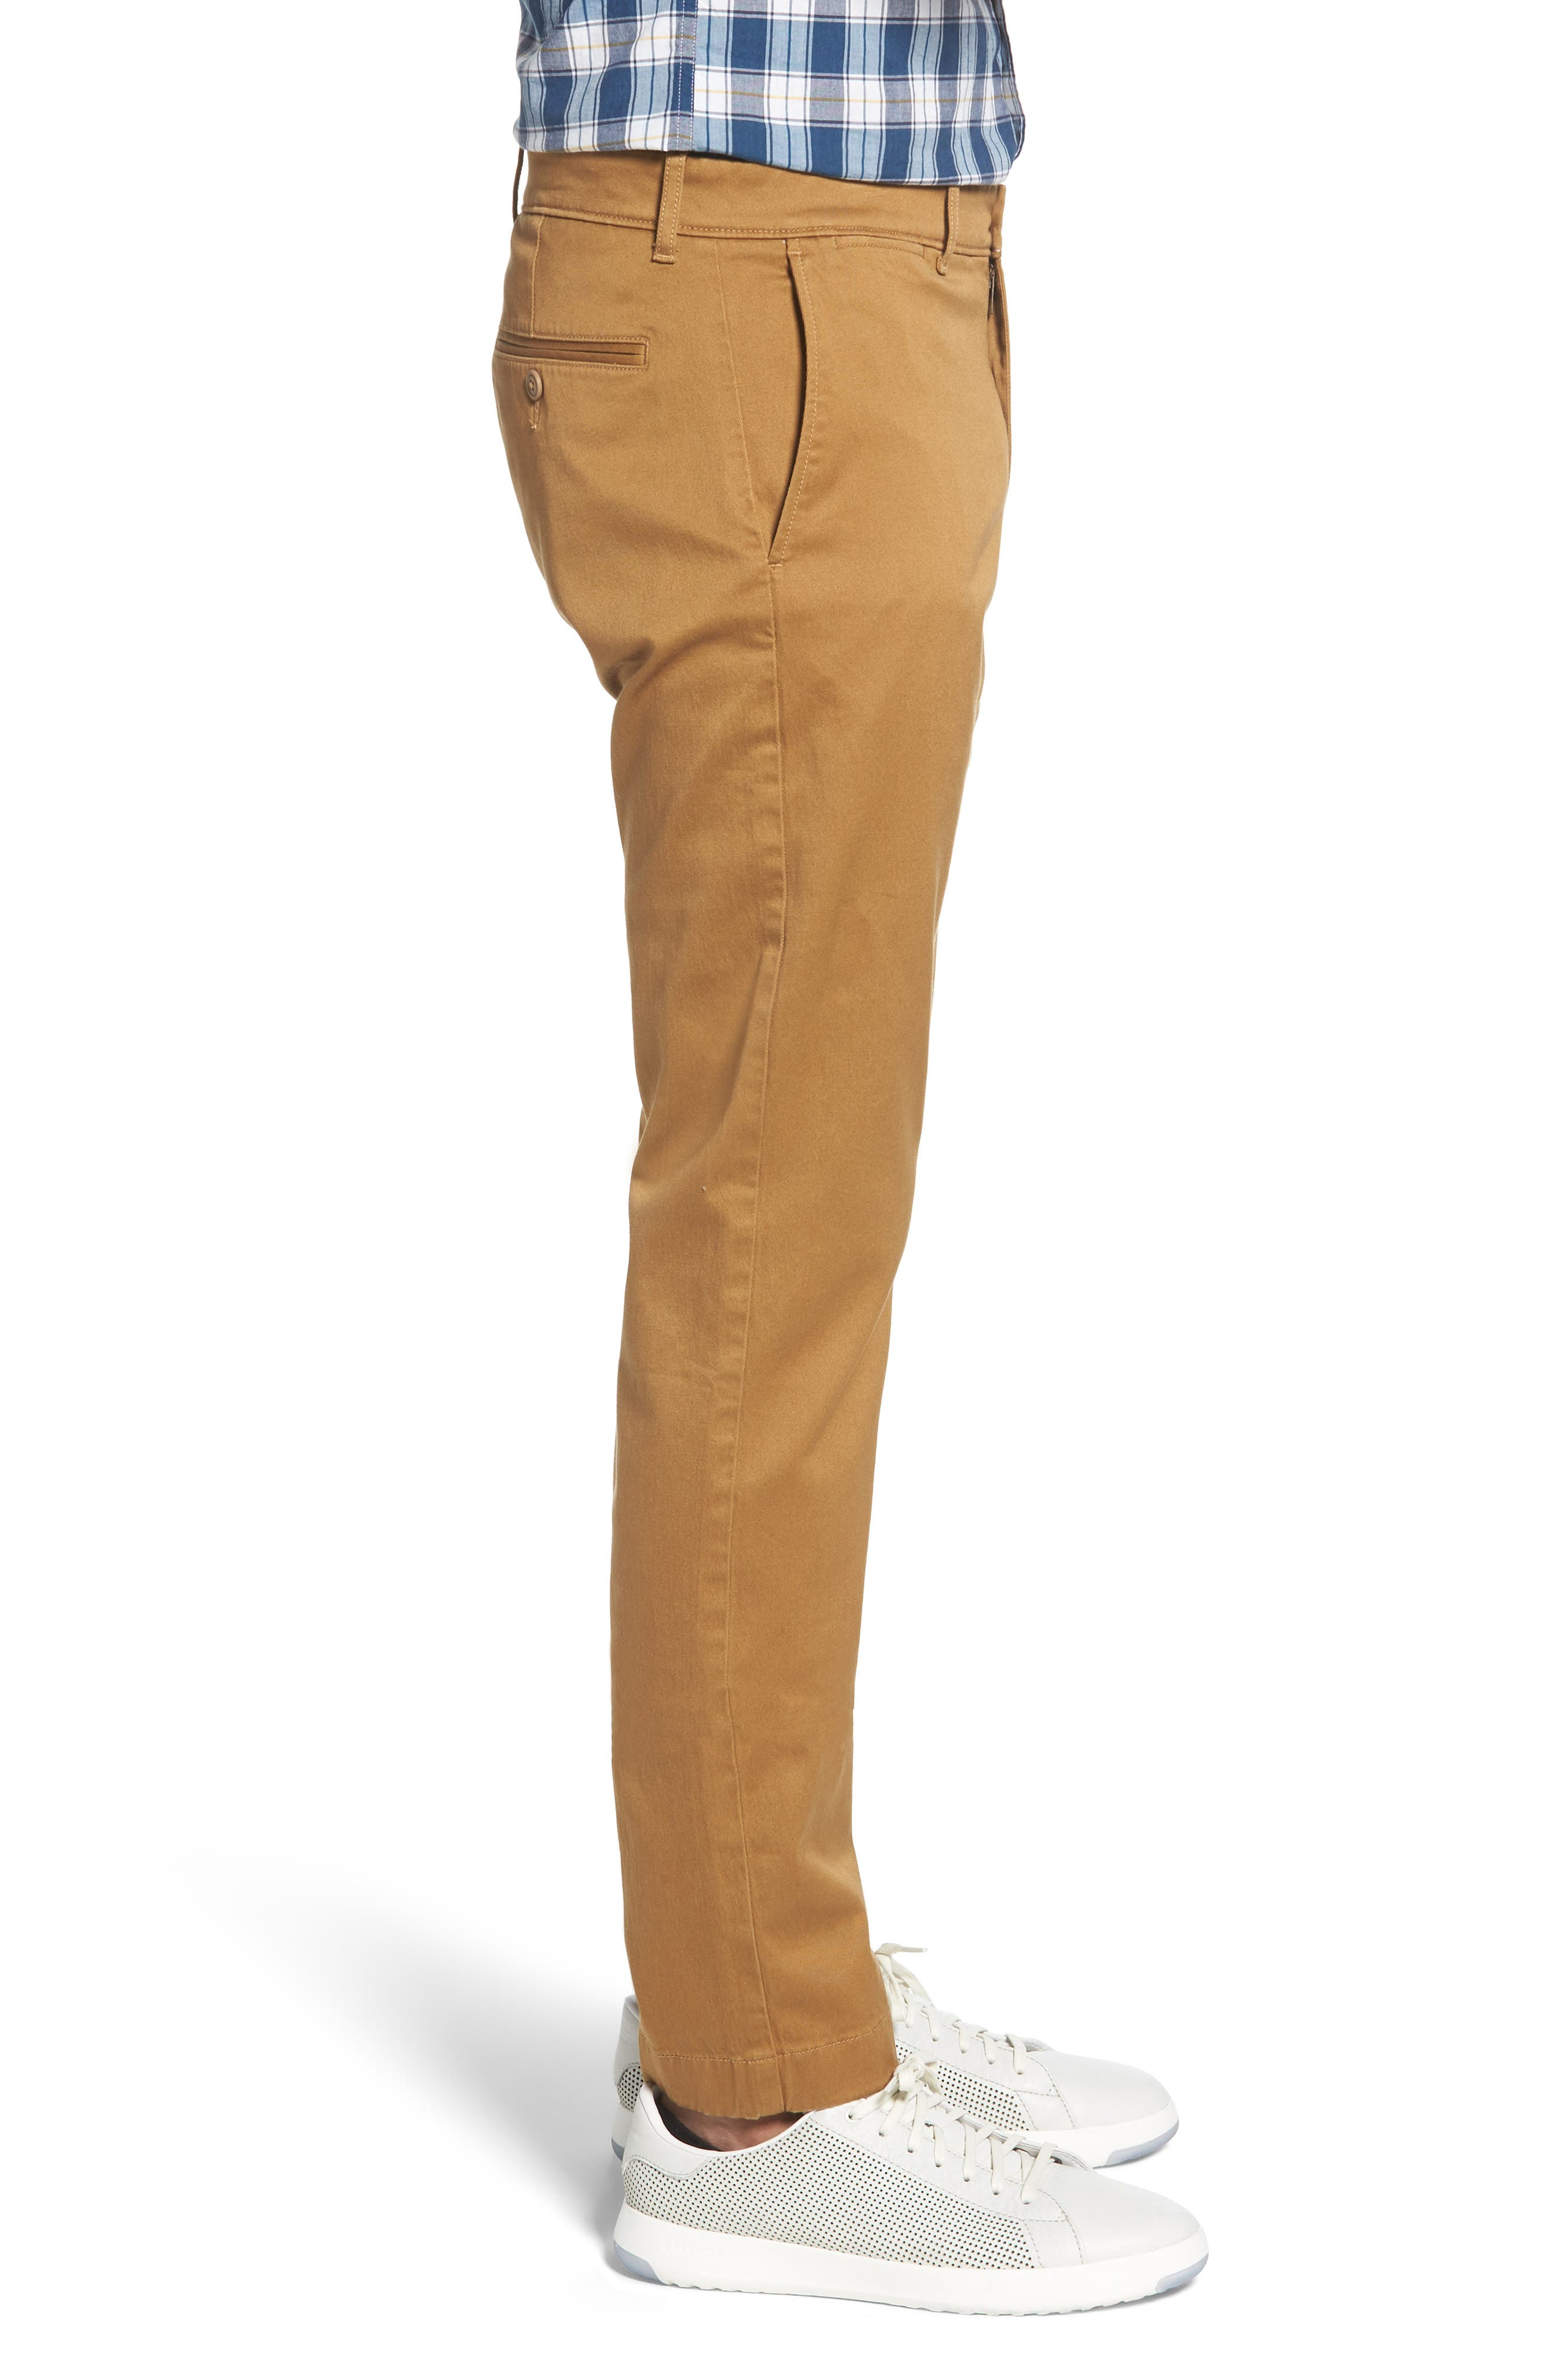 484 Slim Fit Stretch Chino Pants,                             Alternate thumbnail 27, color,